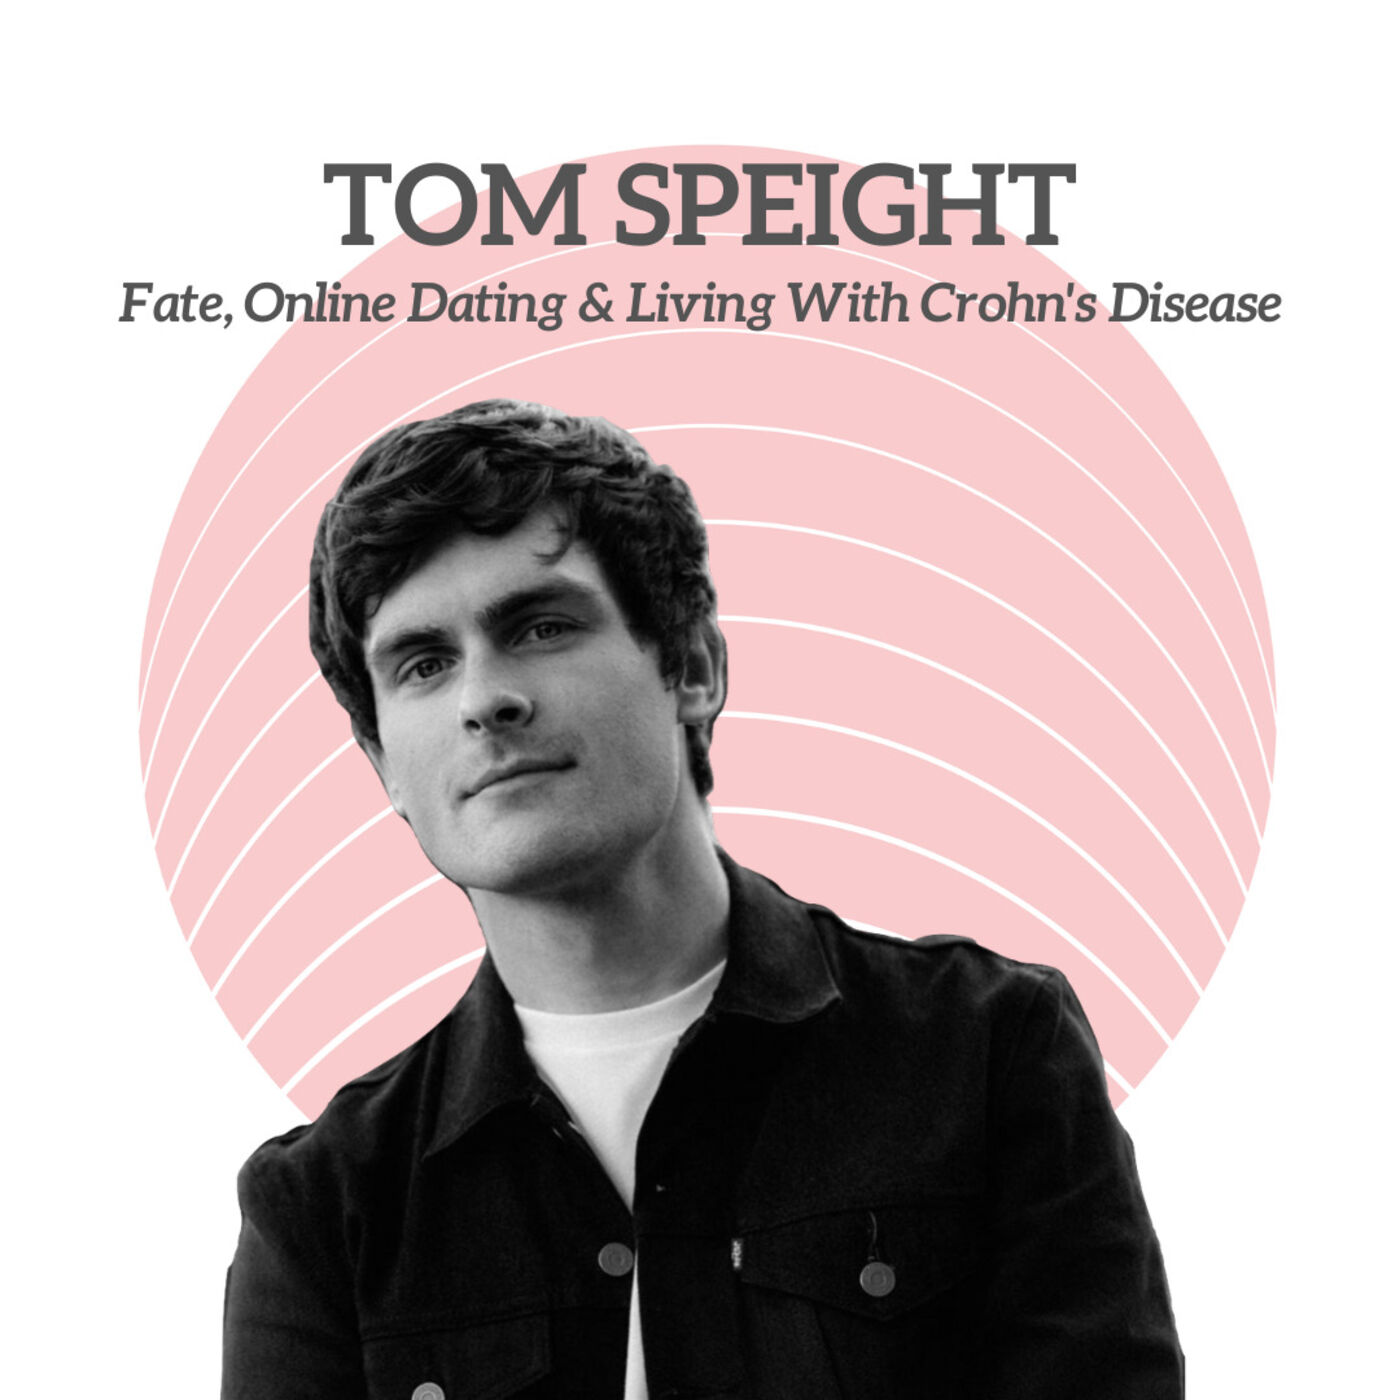 Tom Speight - Fate, Online Dating & Living With Crohn's Disease